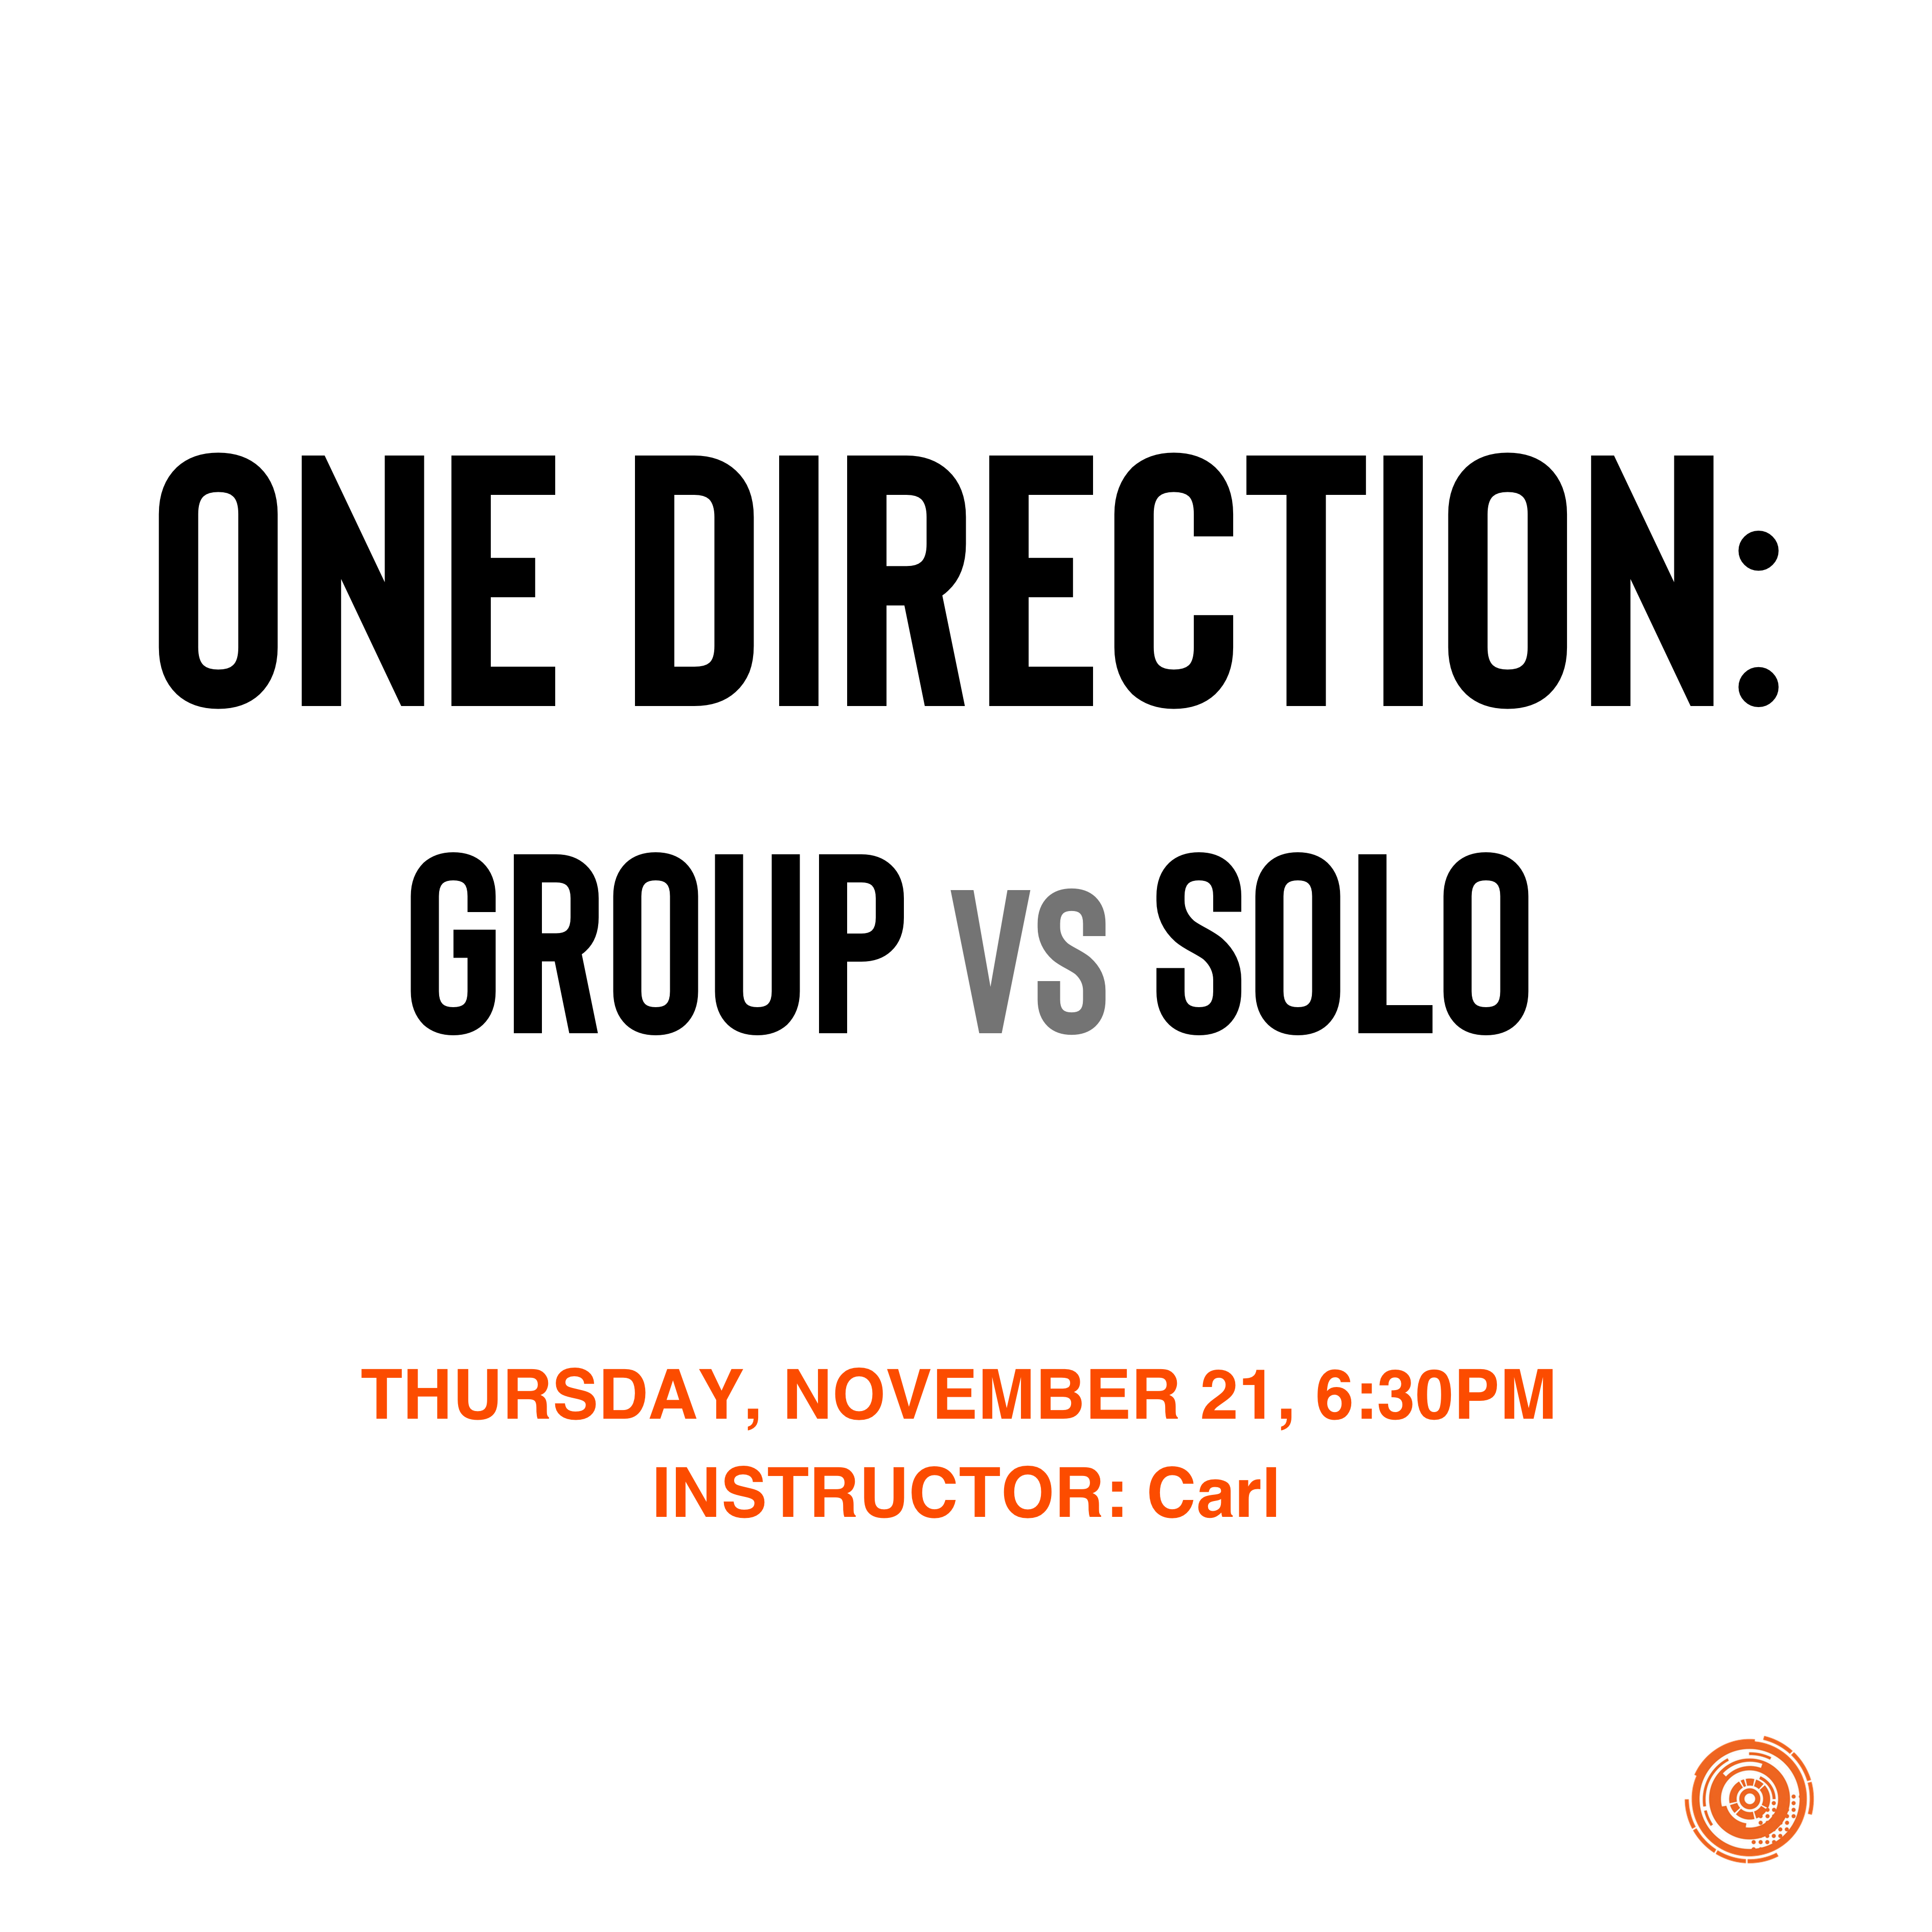 One Direction: Group vs Solo